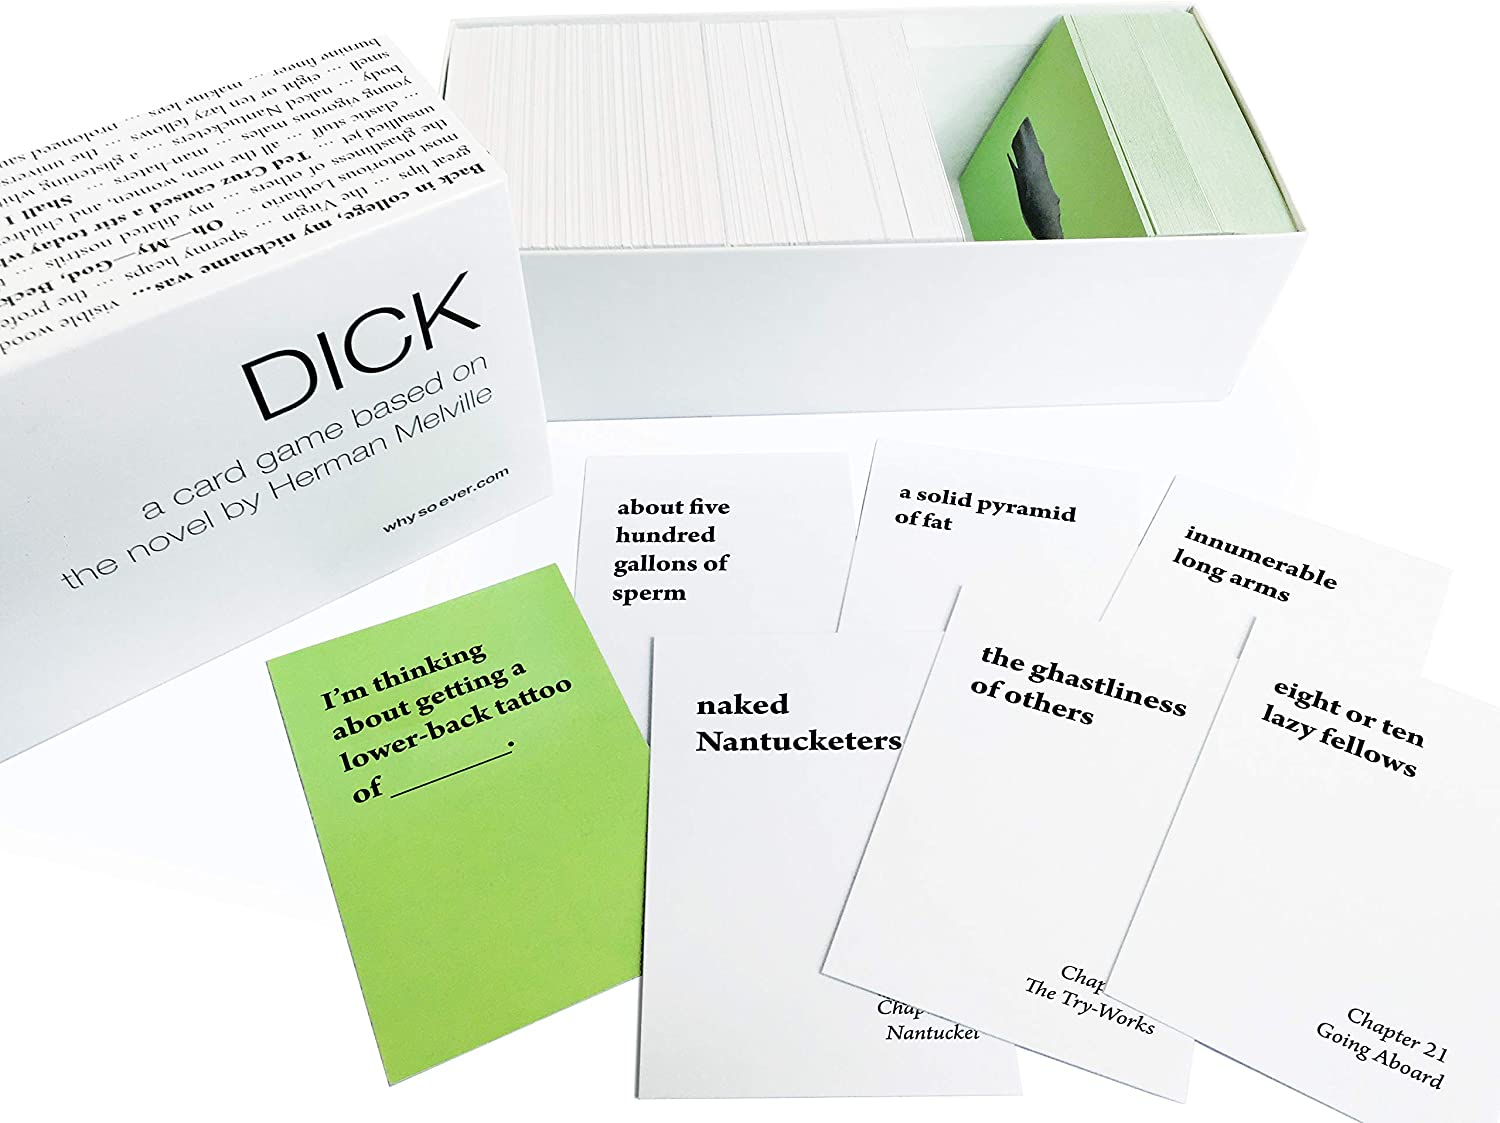 Why So Ever Dick: A Card Game Based on The Novel by Herman Melville